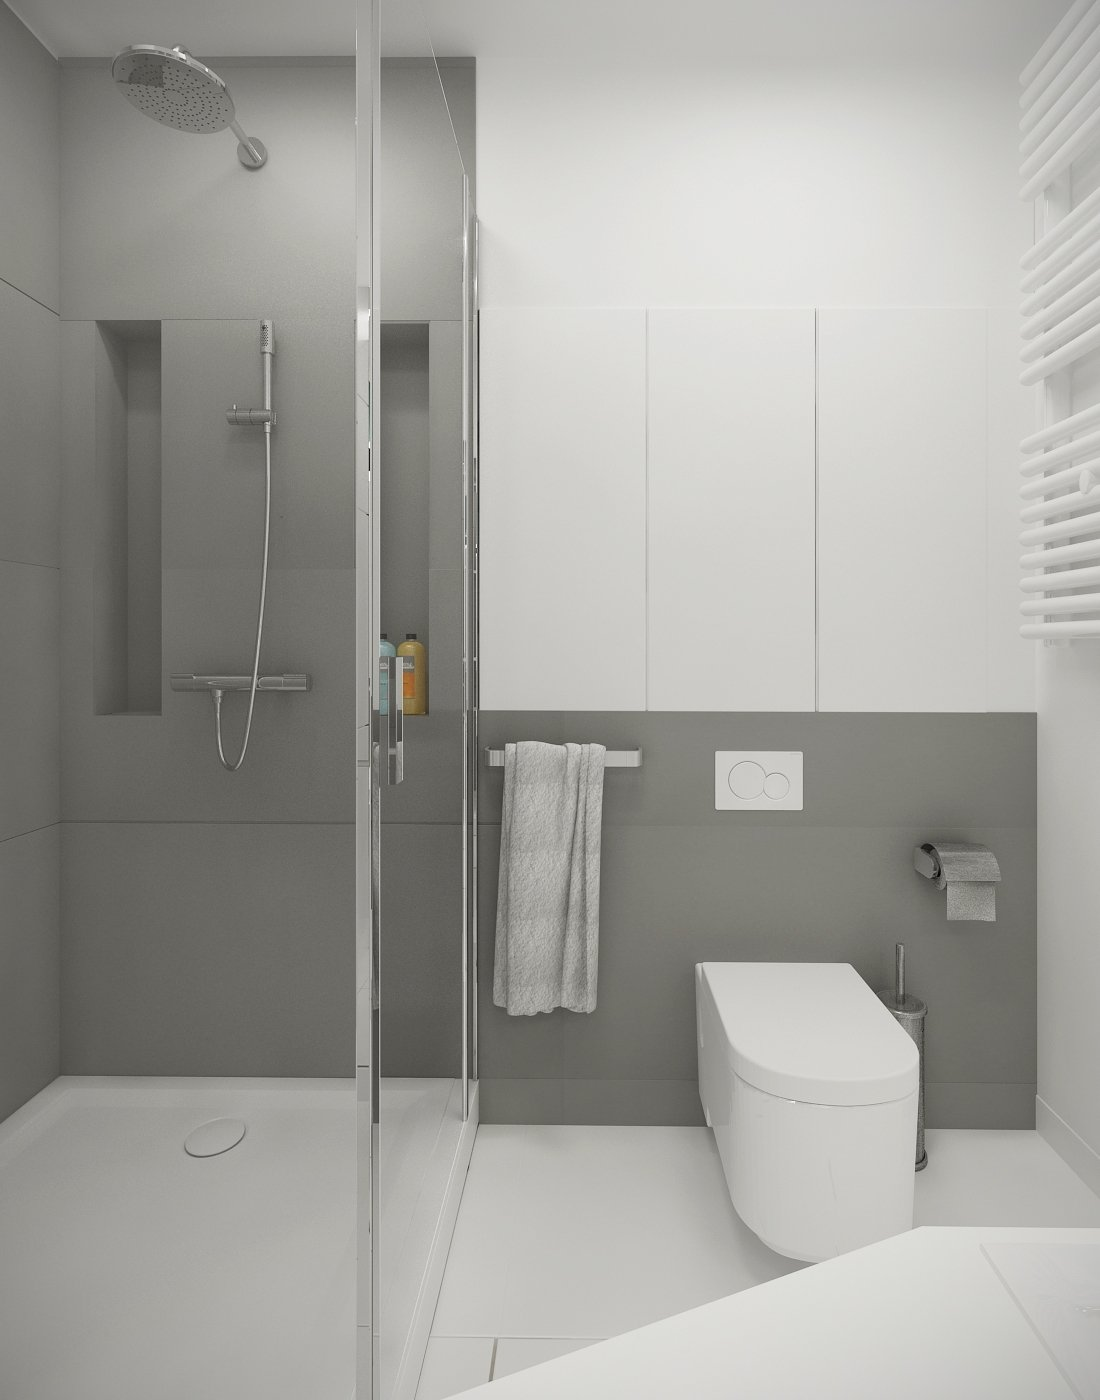 10 Lovable Gray And White Bathroom Ideas gray and white bathroom ideas grey and white bathroom ideas uk 2020